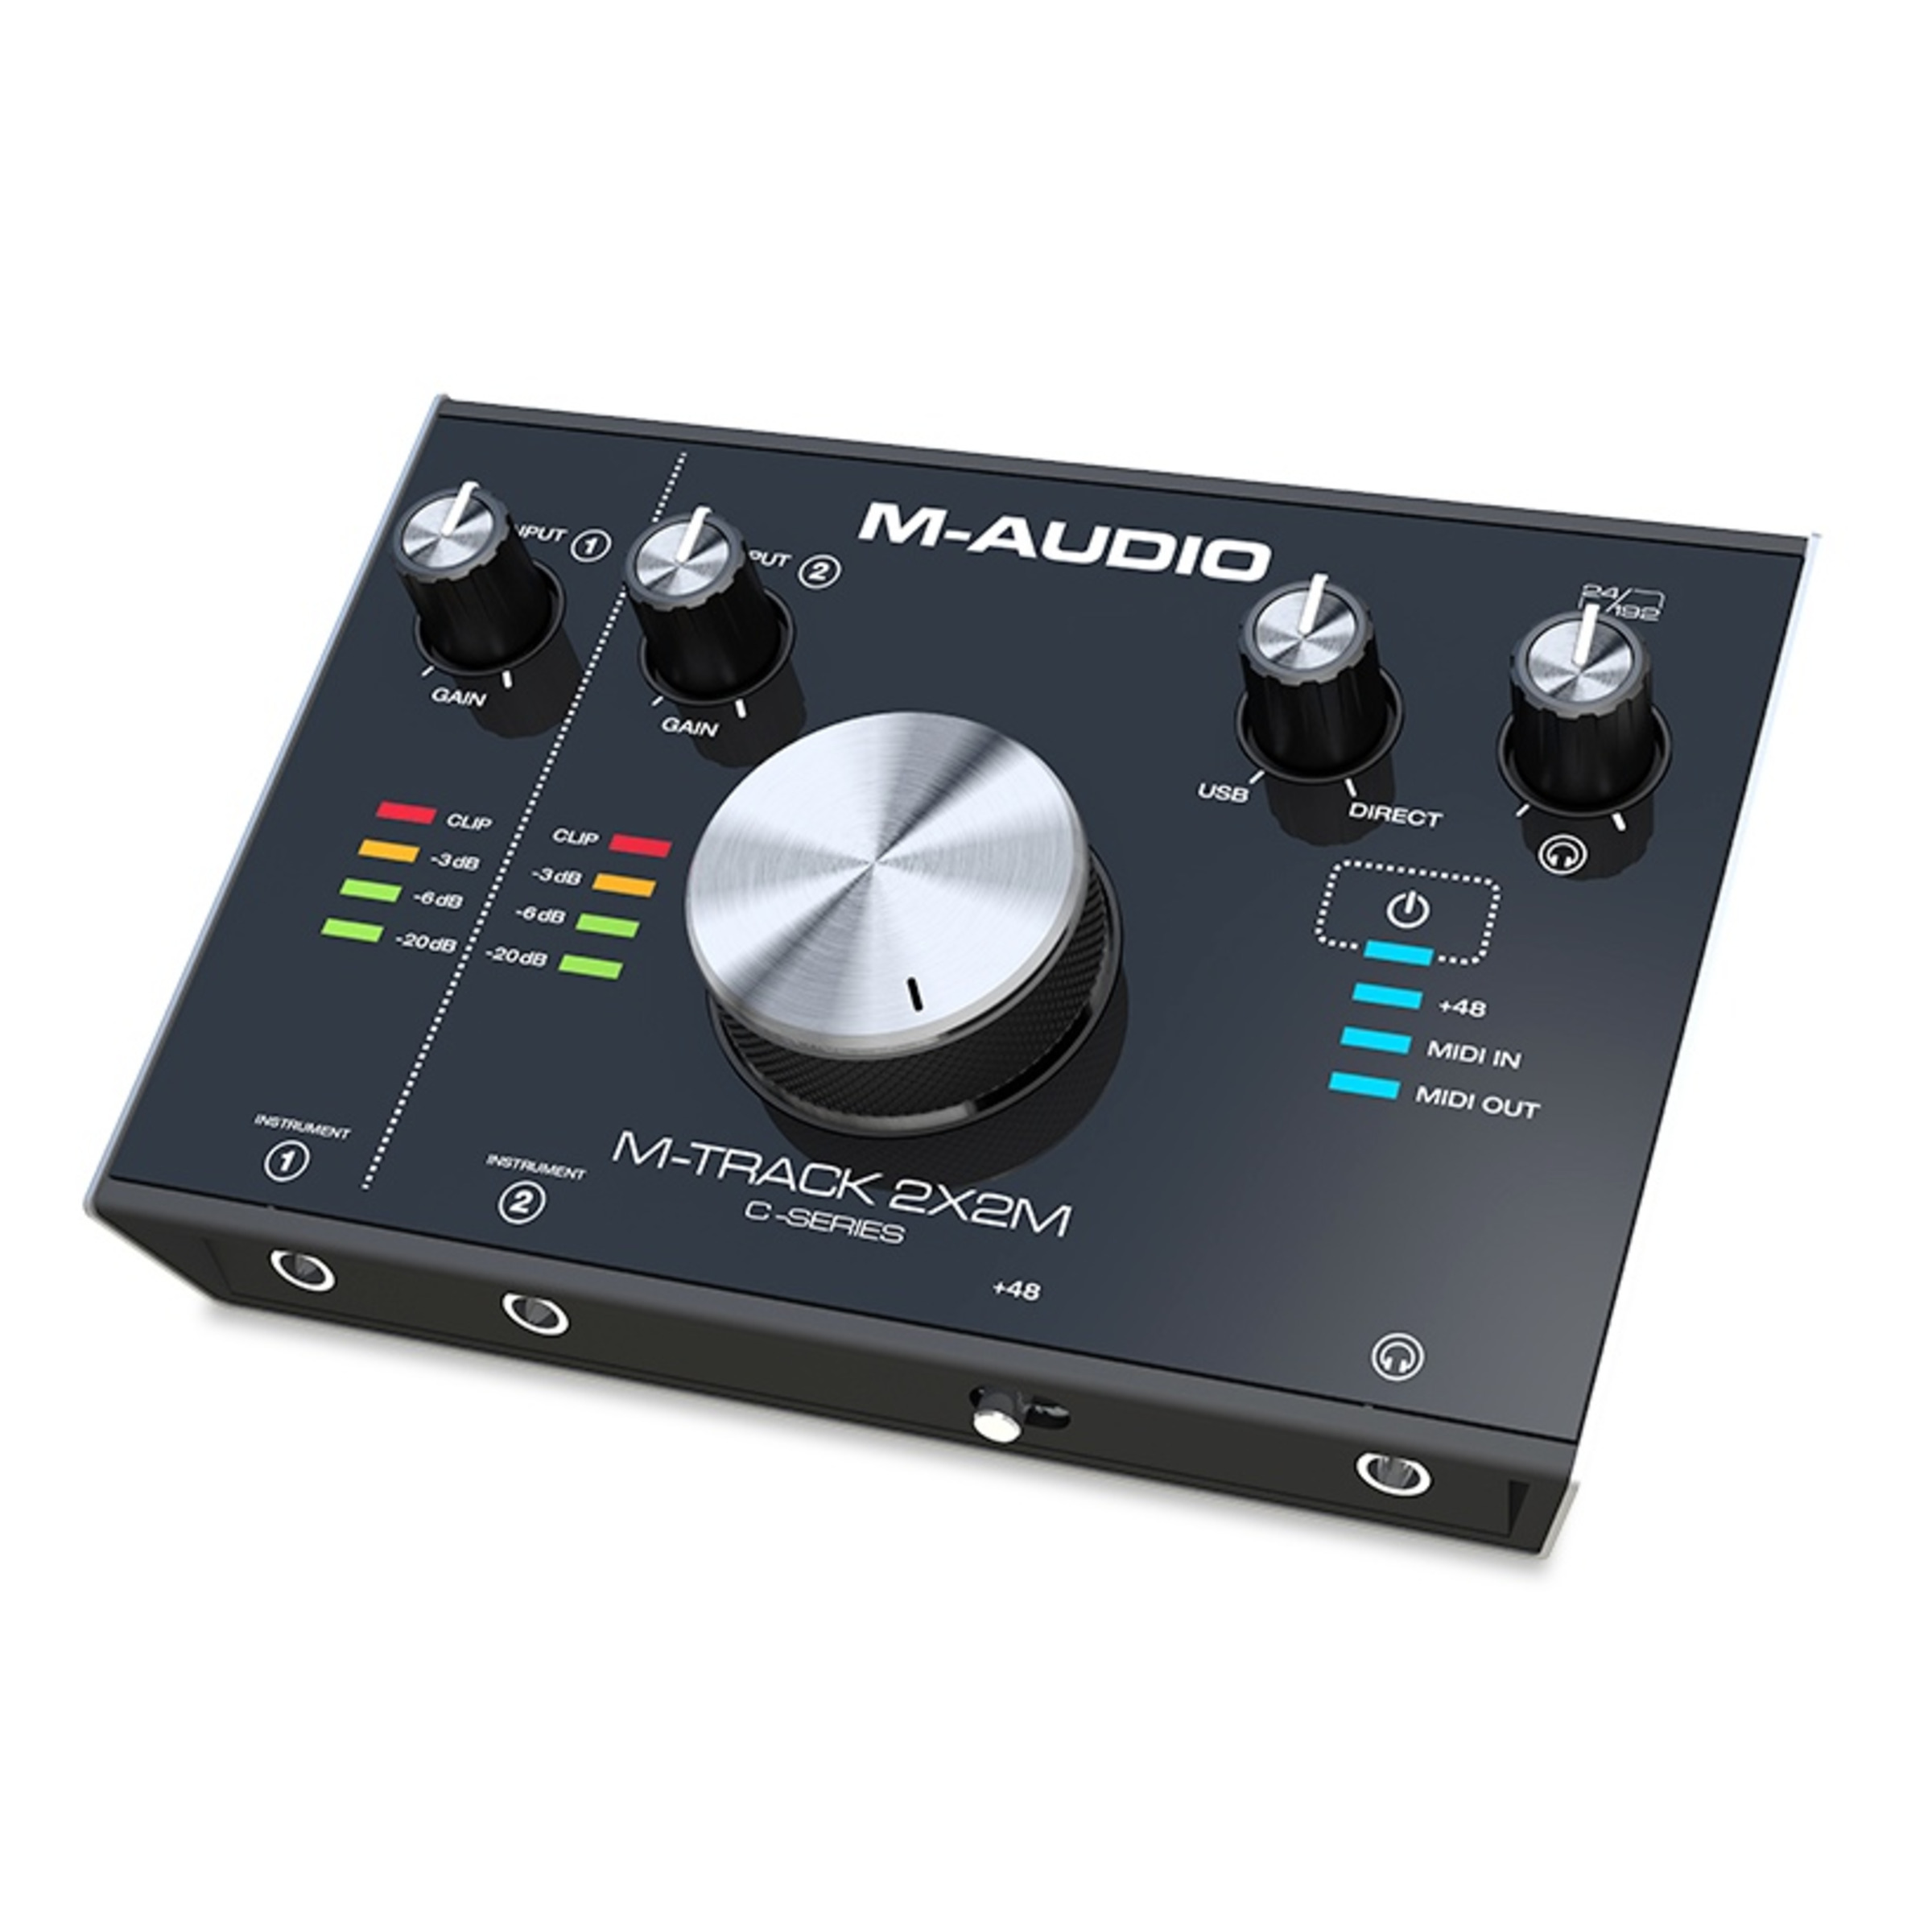 m audio m track 2x2m usb audio interface with midi giggear. Black Bedroom Furniture Sets. Home Design Ideas